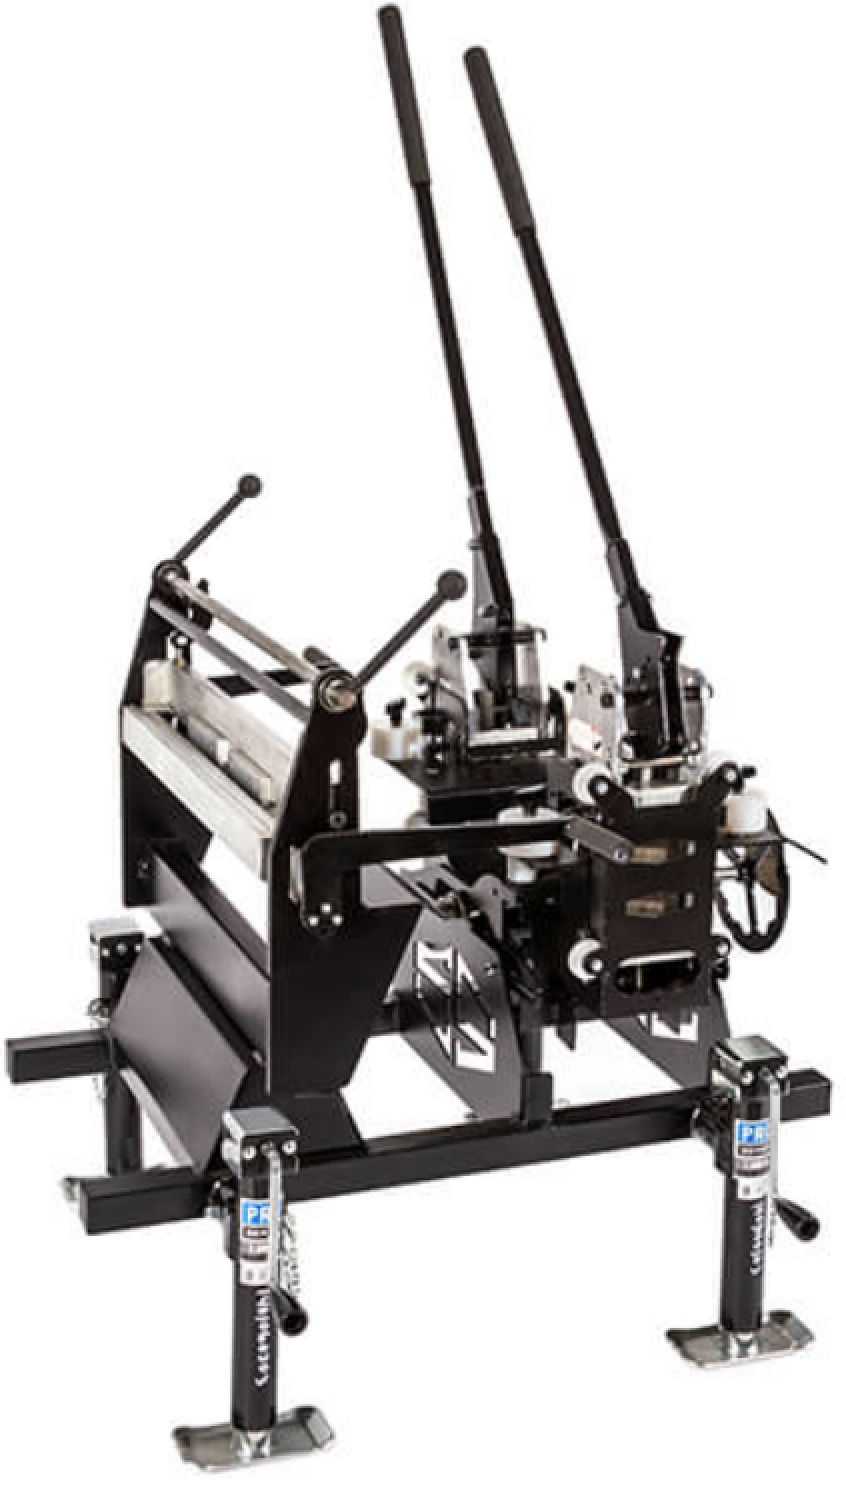 Eave Master from Swenson Shear